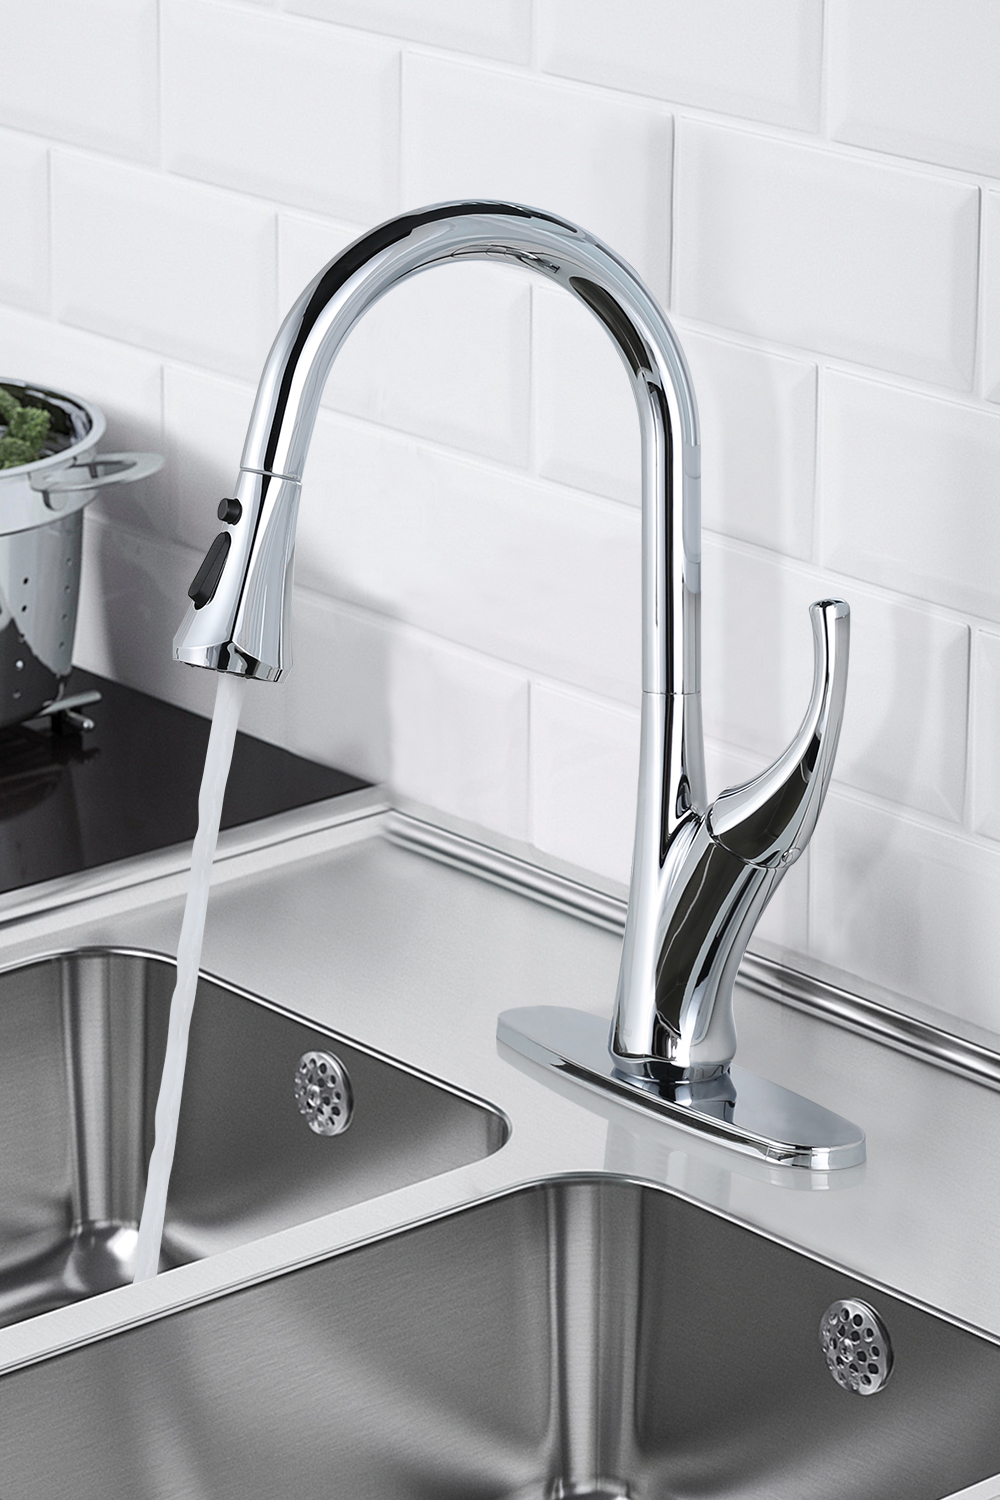 Analysis of the installation of high shower faucets